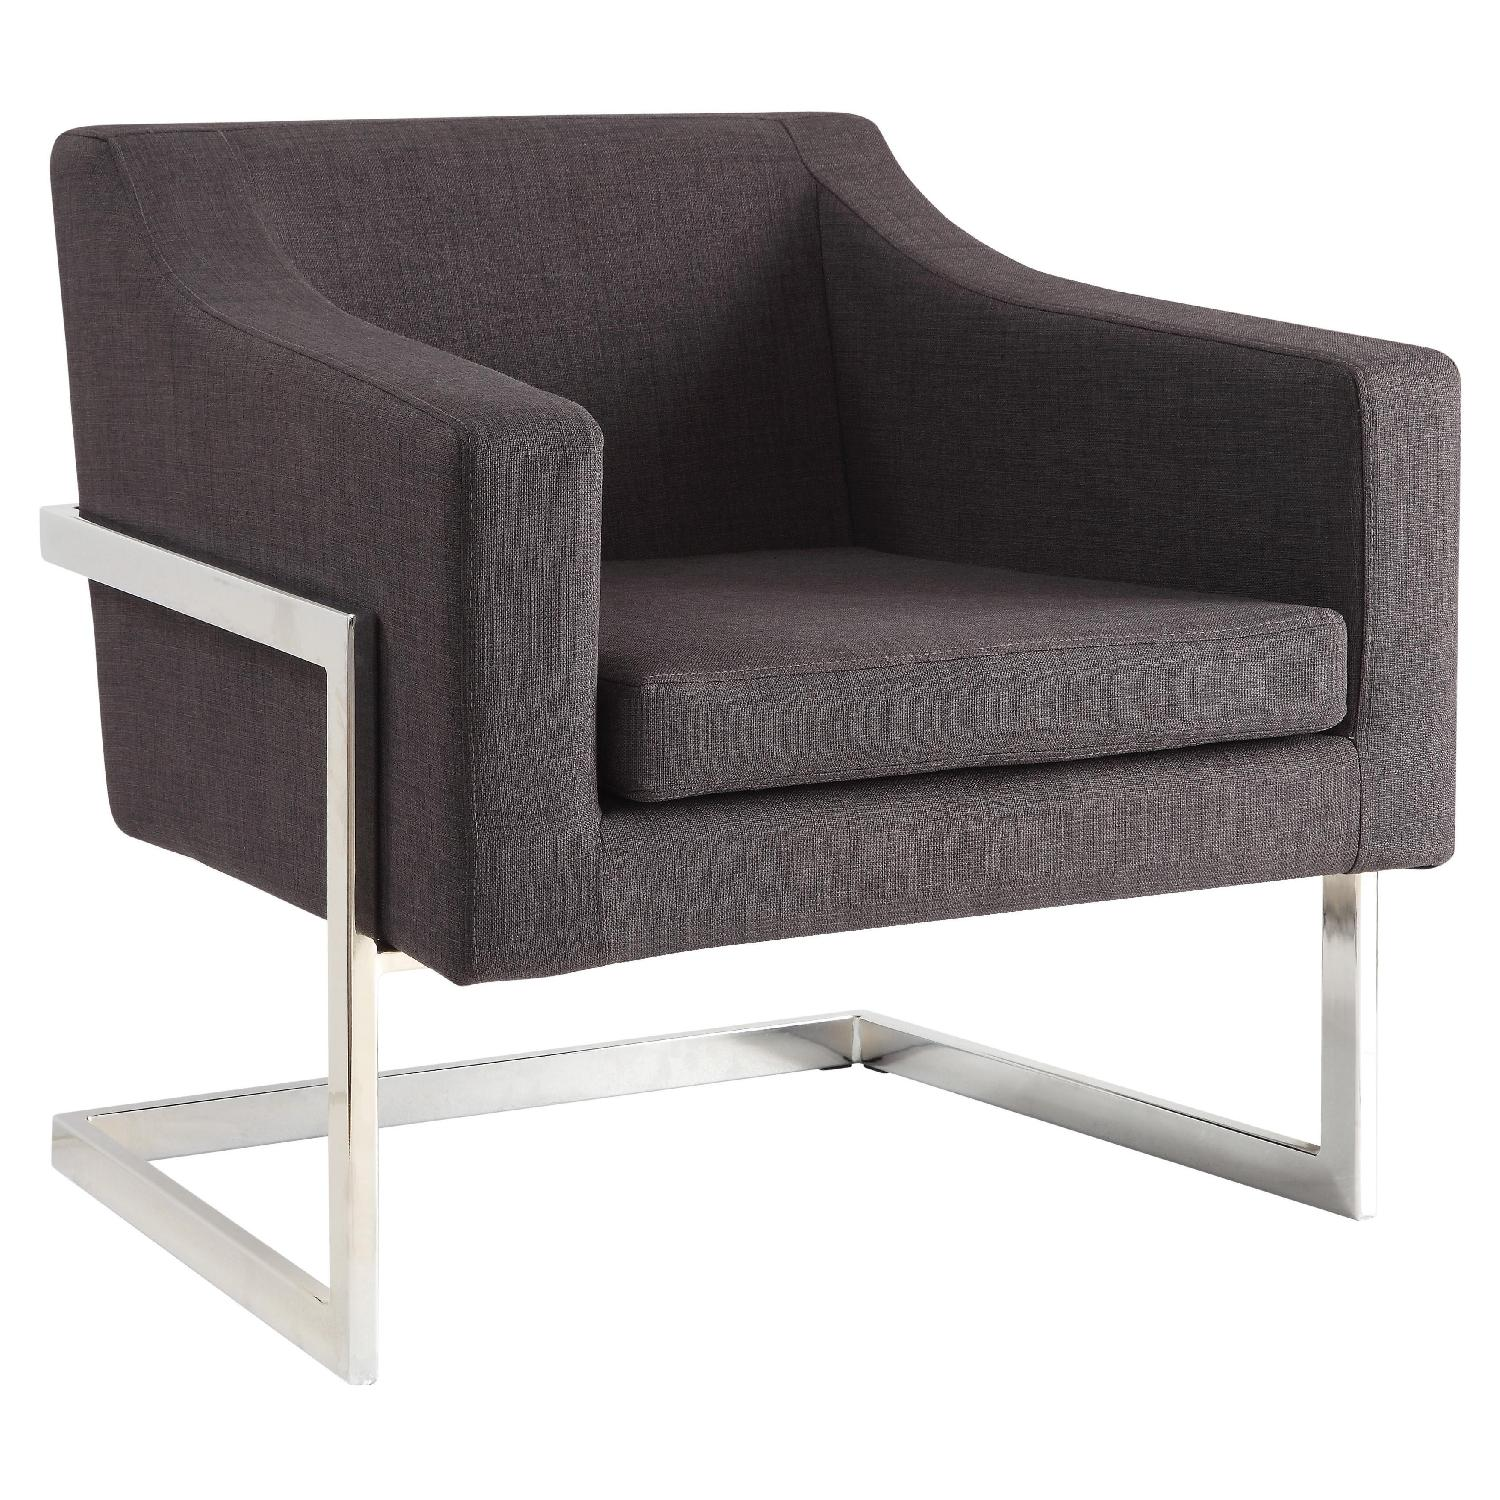 Contemporary Accent Chair in Dark Grey Fabric w/ Exposed Metal Frame